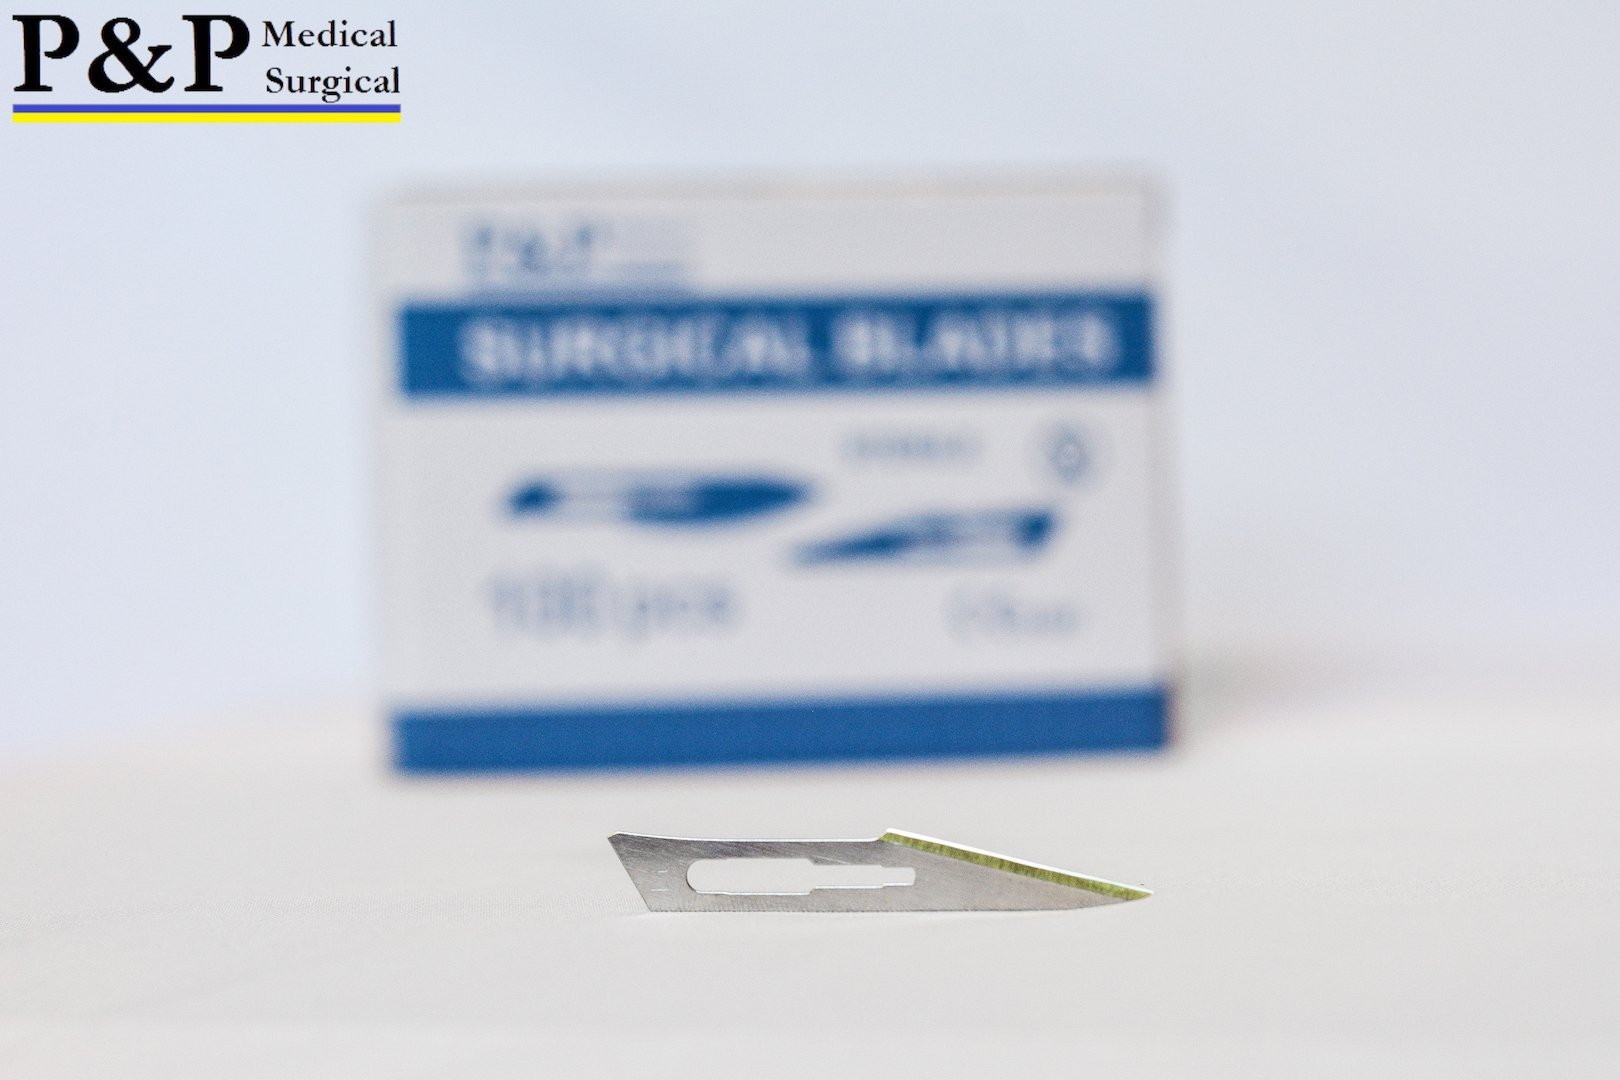 SCALPEL BLADE DISPOSABLE SURGICAL Size 11 (3000 blades) (High Grade Carbon Steel 2.1%,10xx) ,DESIGNED in USA by P&P Medical Surgical (Image #6)